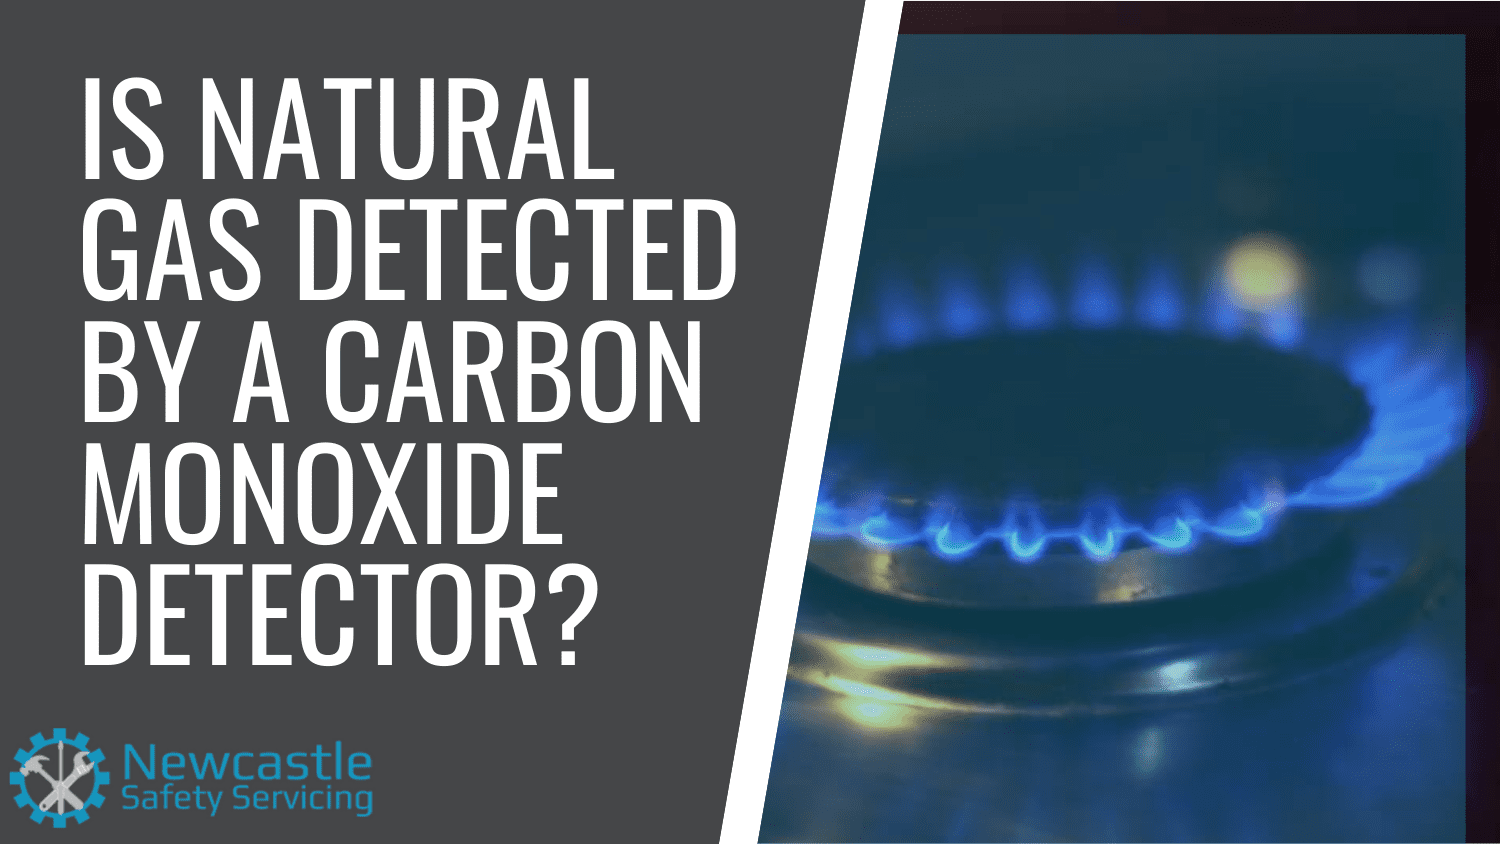 is natural gas detected by a carbon monoxide detector?